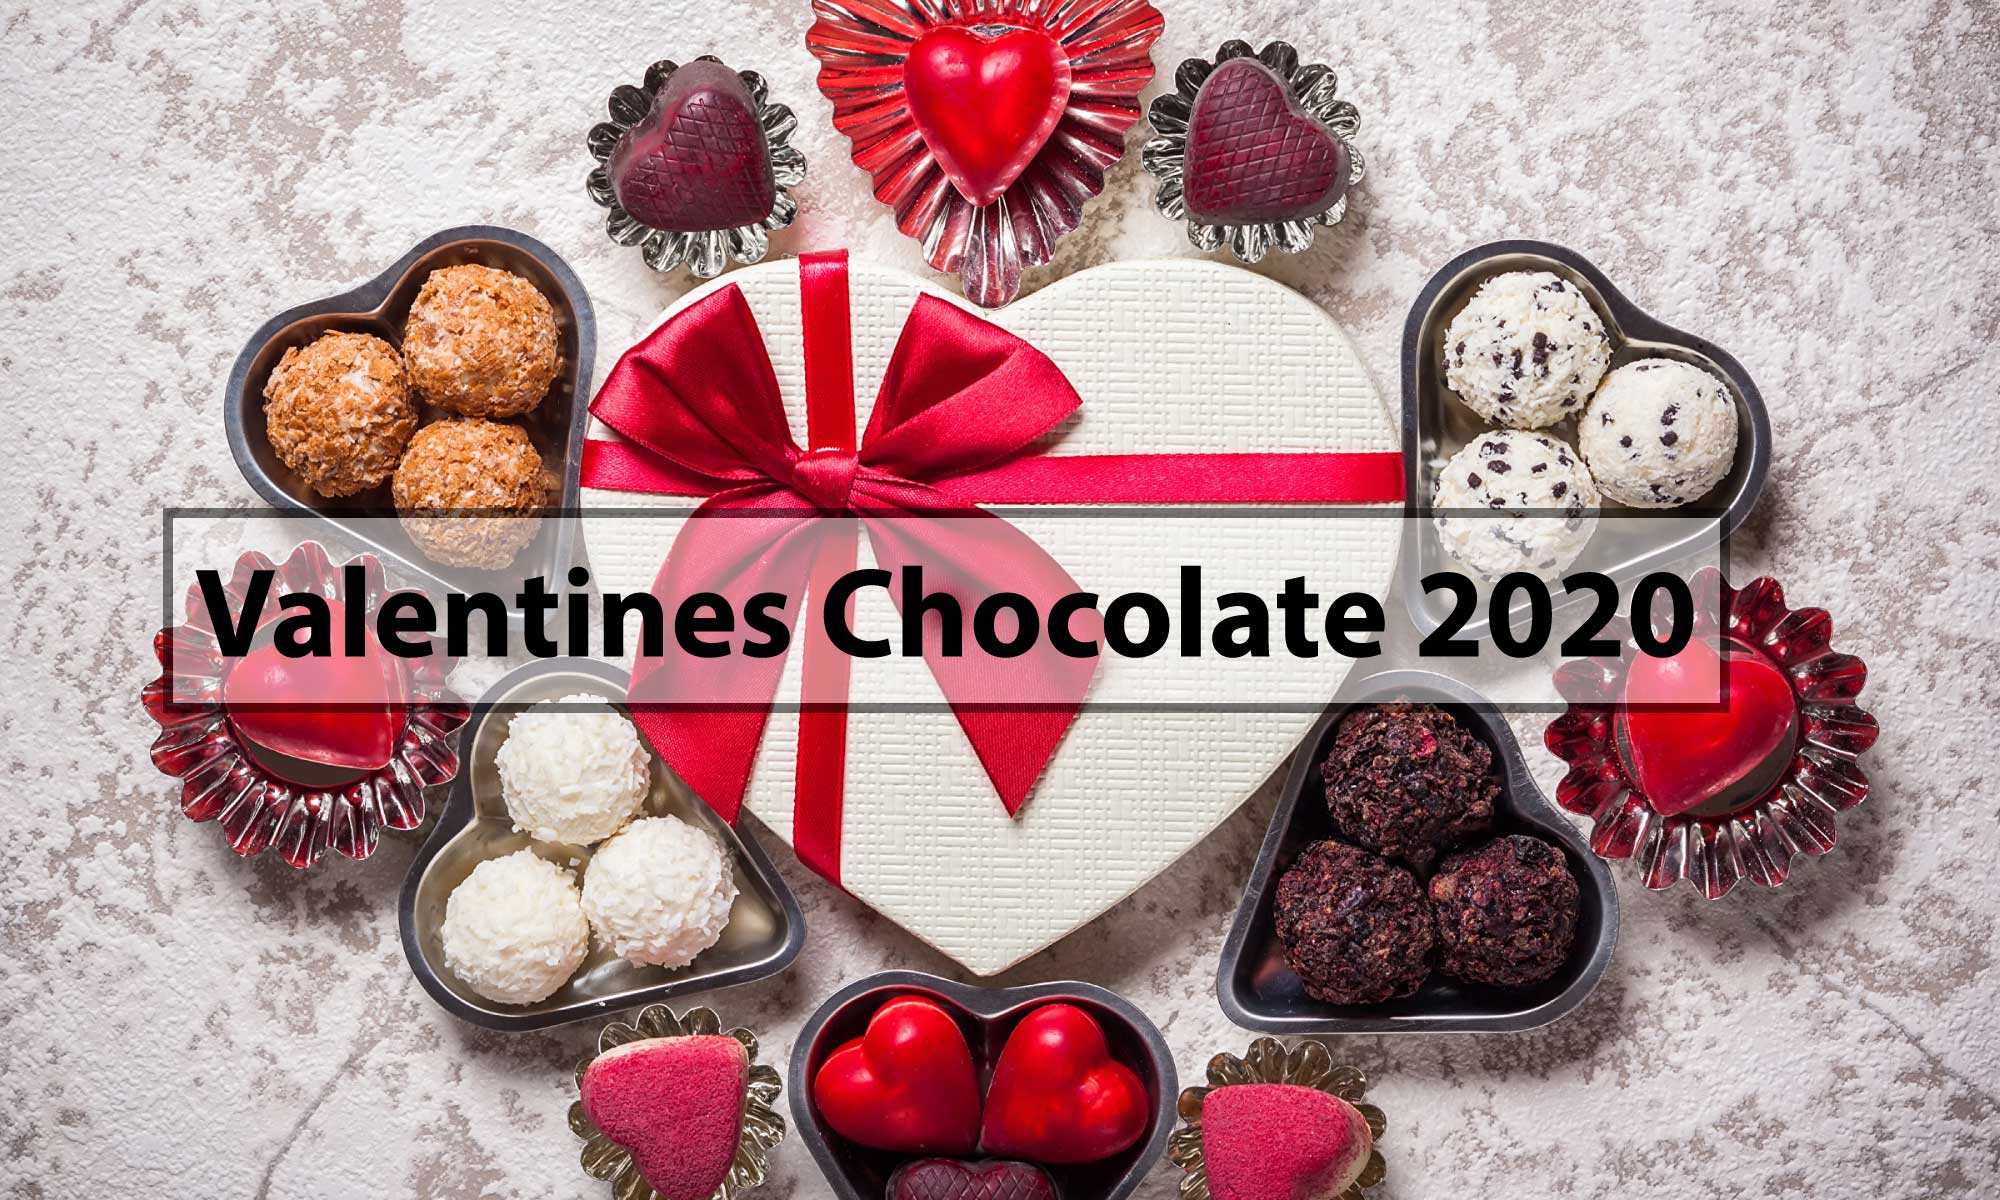 Valentines-Chocolate-2020